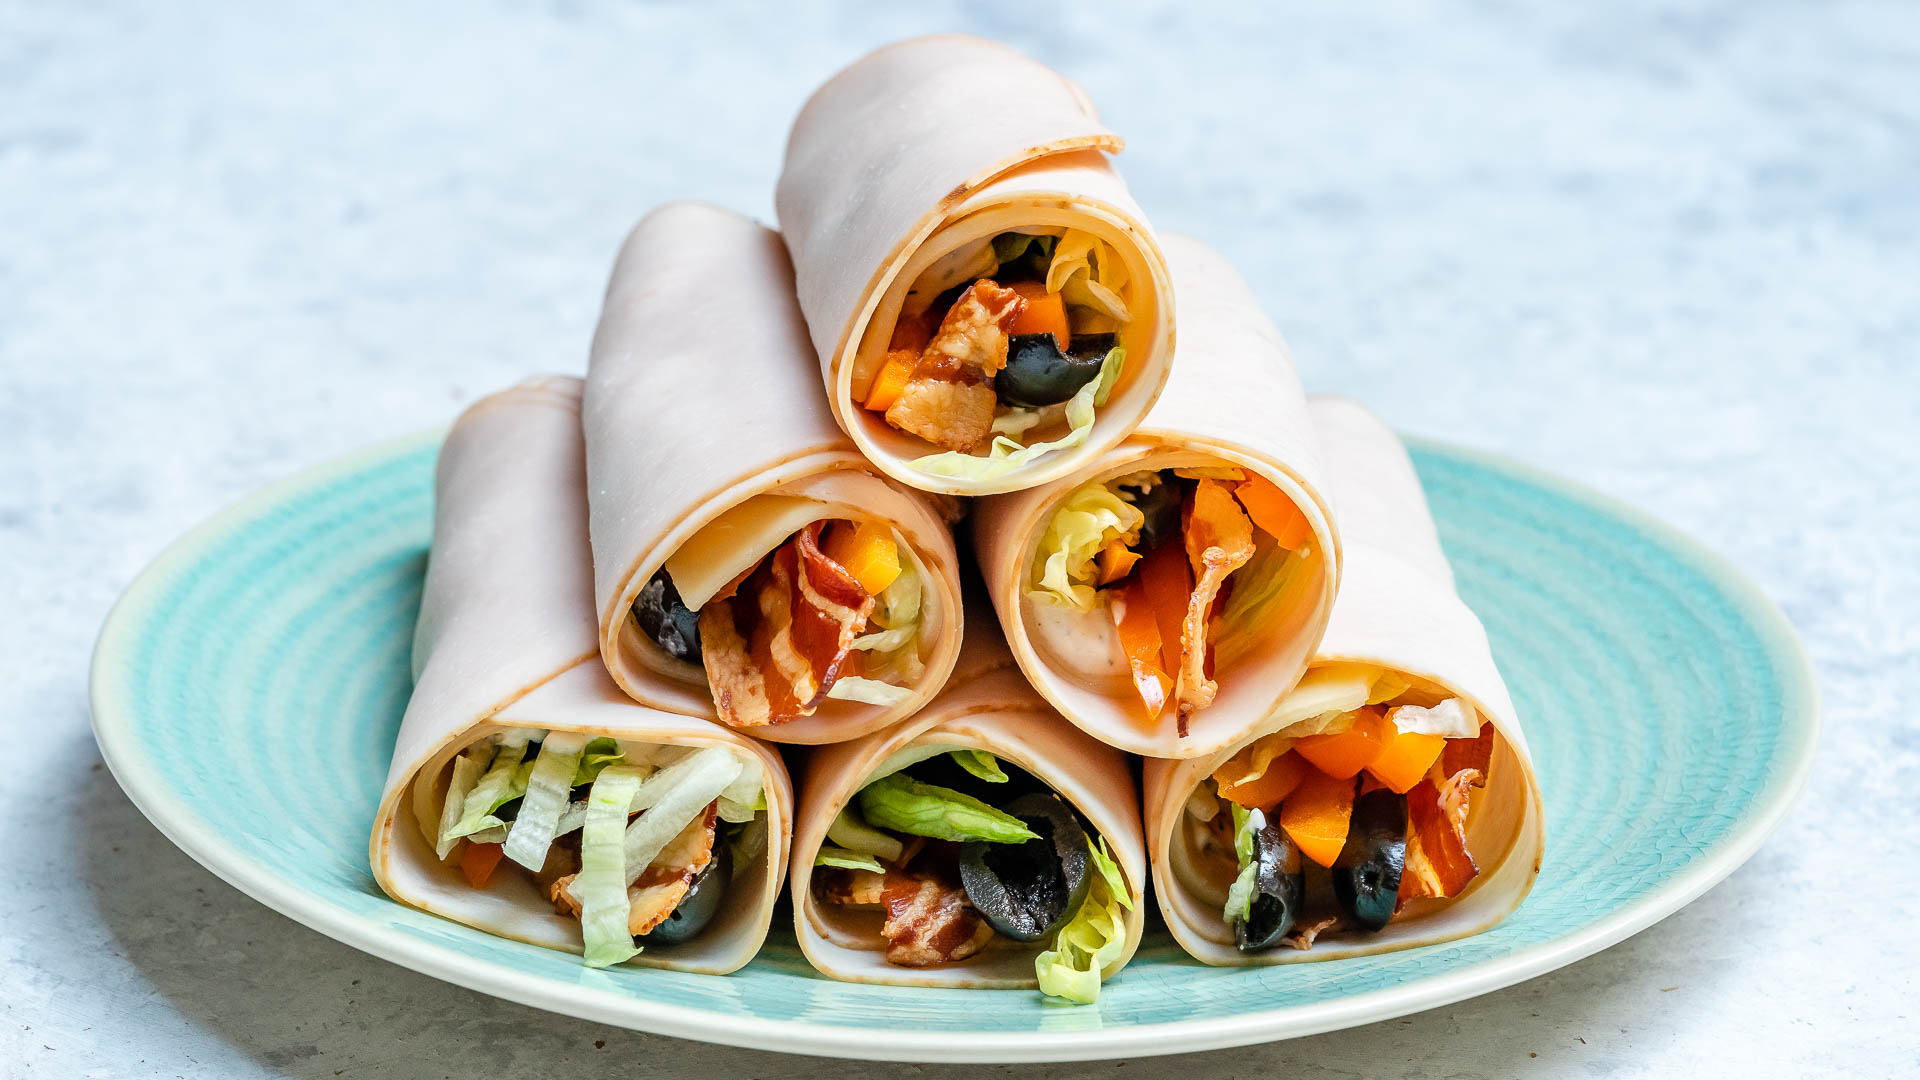 Low Carb Sandwich Roll-ups